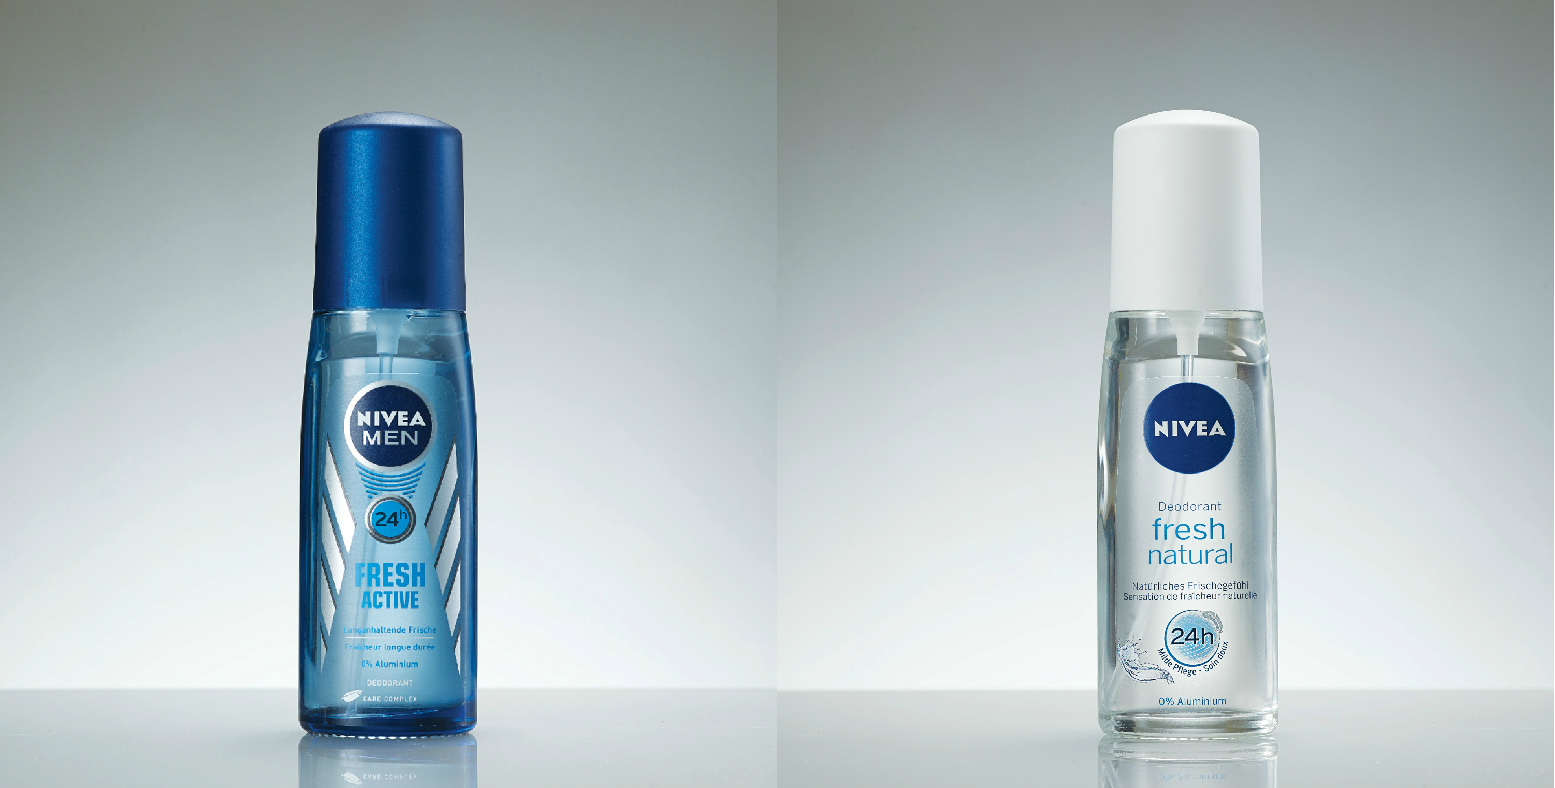 PR:Nivea Fresh Active and Fresh Natural Deodrants